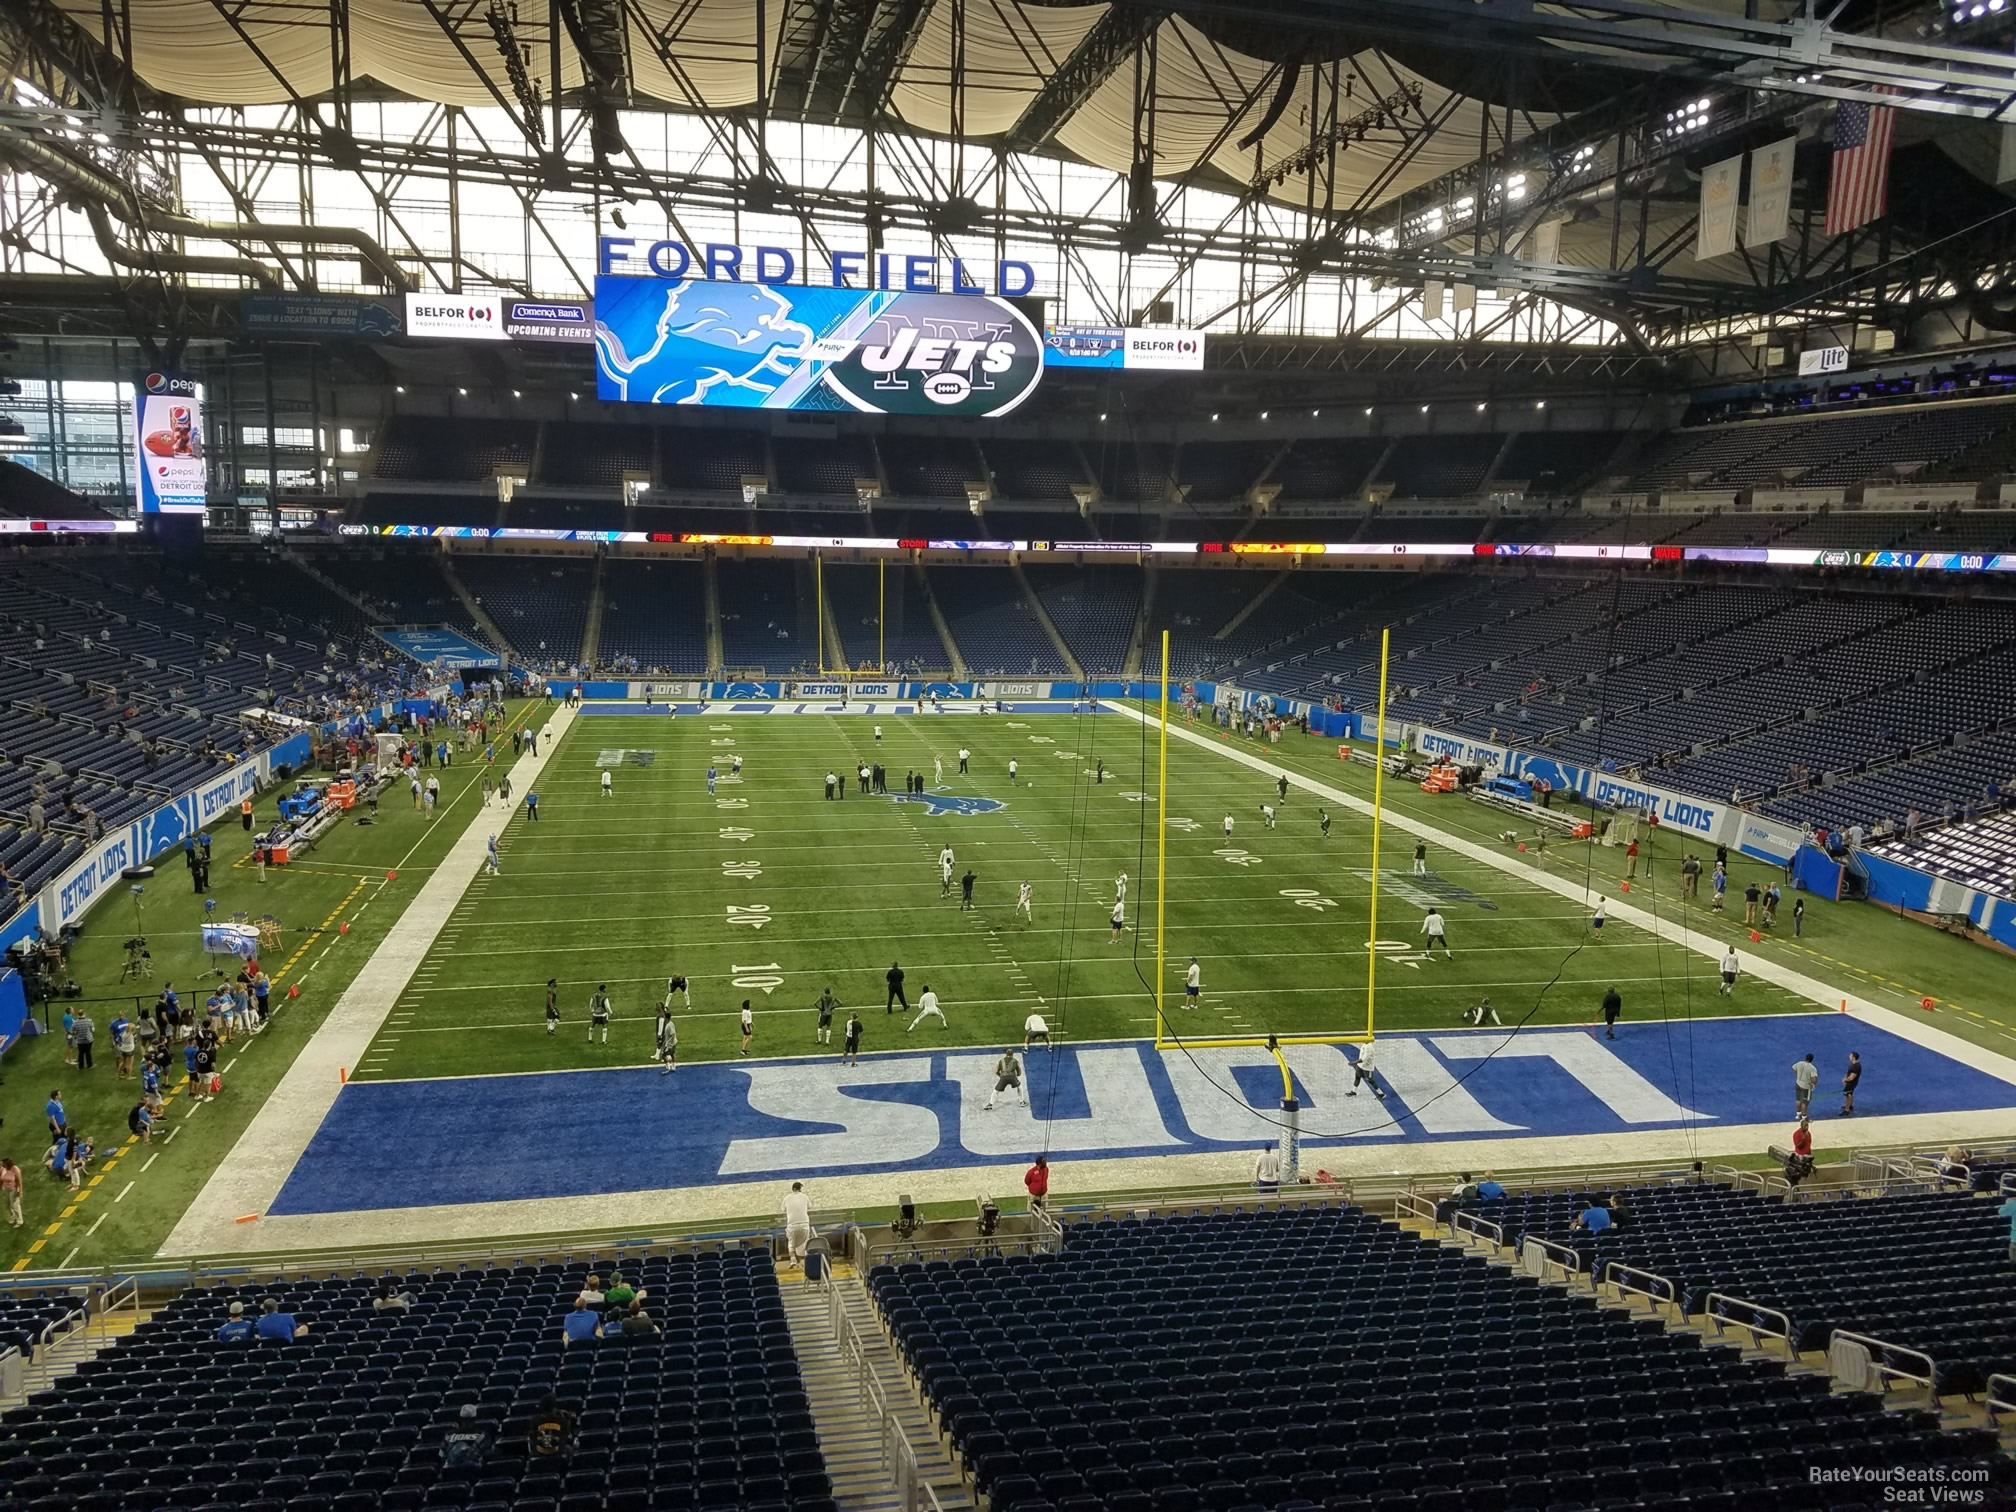 North Side Ford >> Ford Field Section 217 - Detroit Lions - RateYourSeats.com